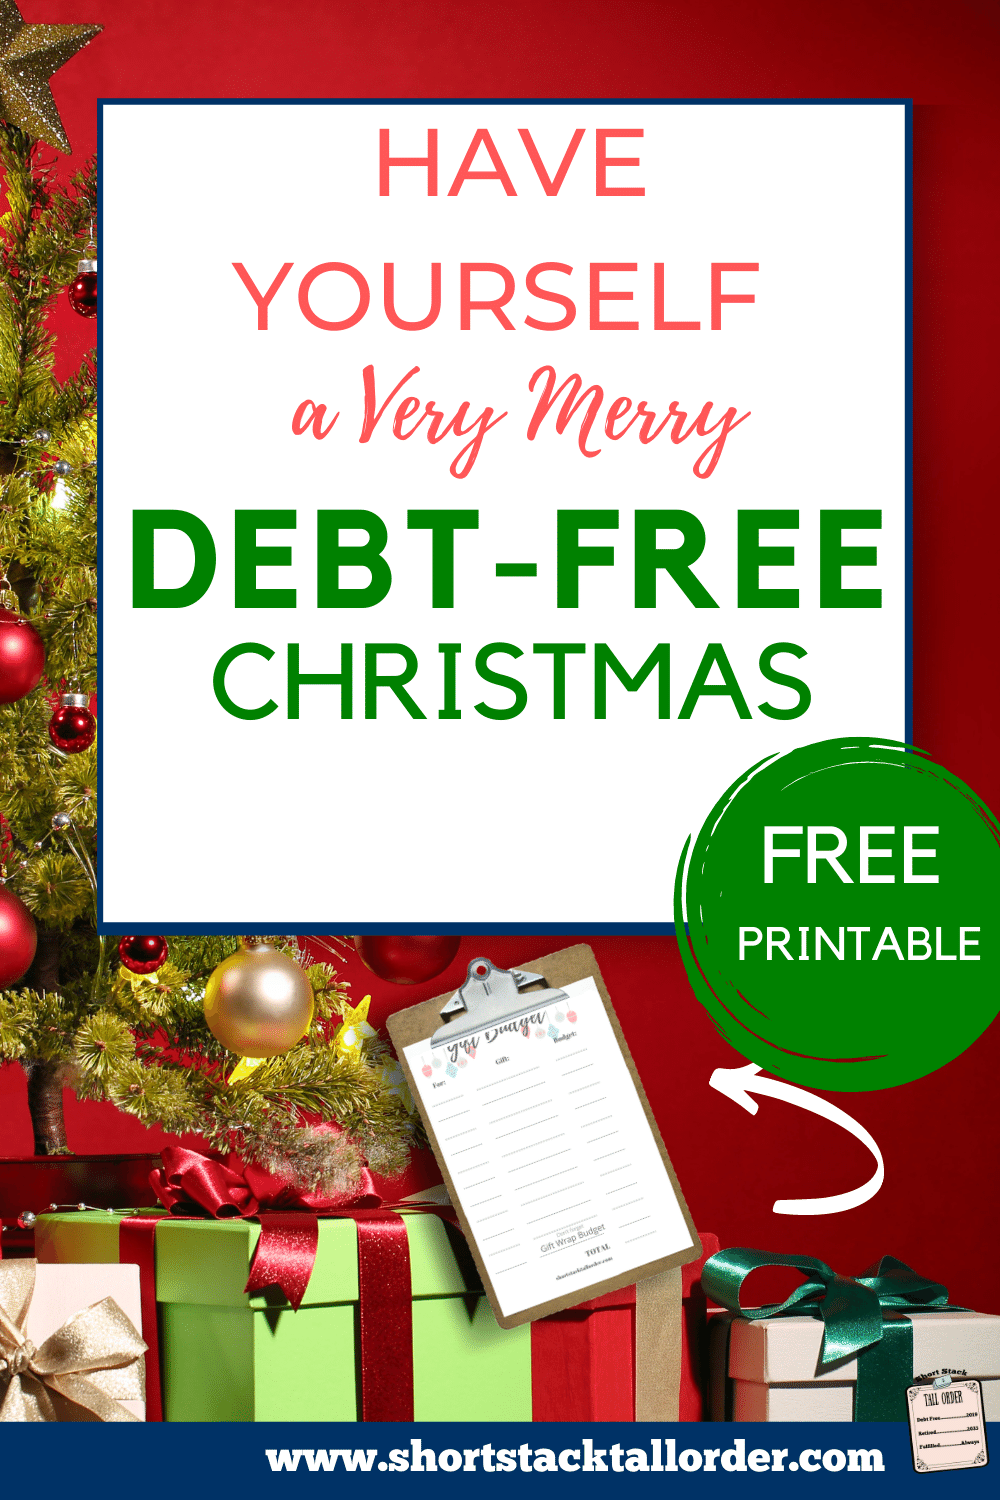 Christmas 2020 Debt Free Have a Very Merry Debt Free Christmas! in 2020 | Debt free, Free